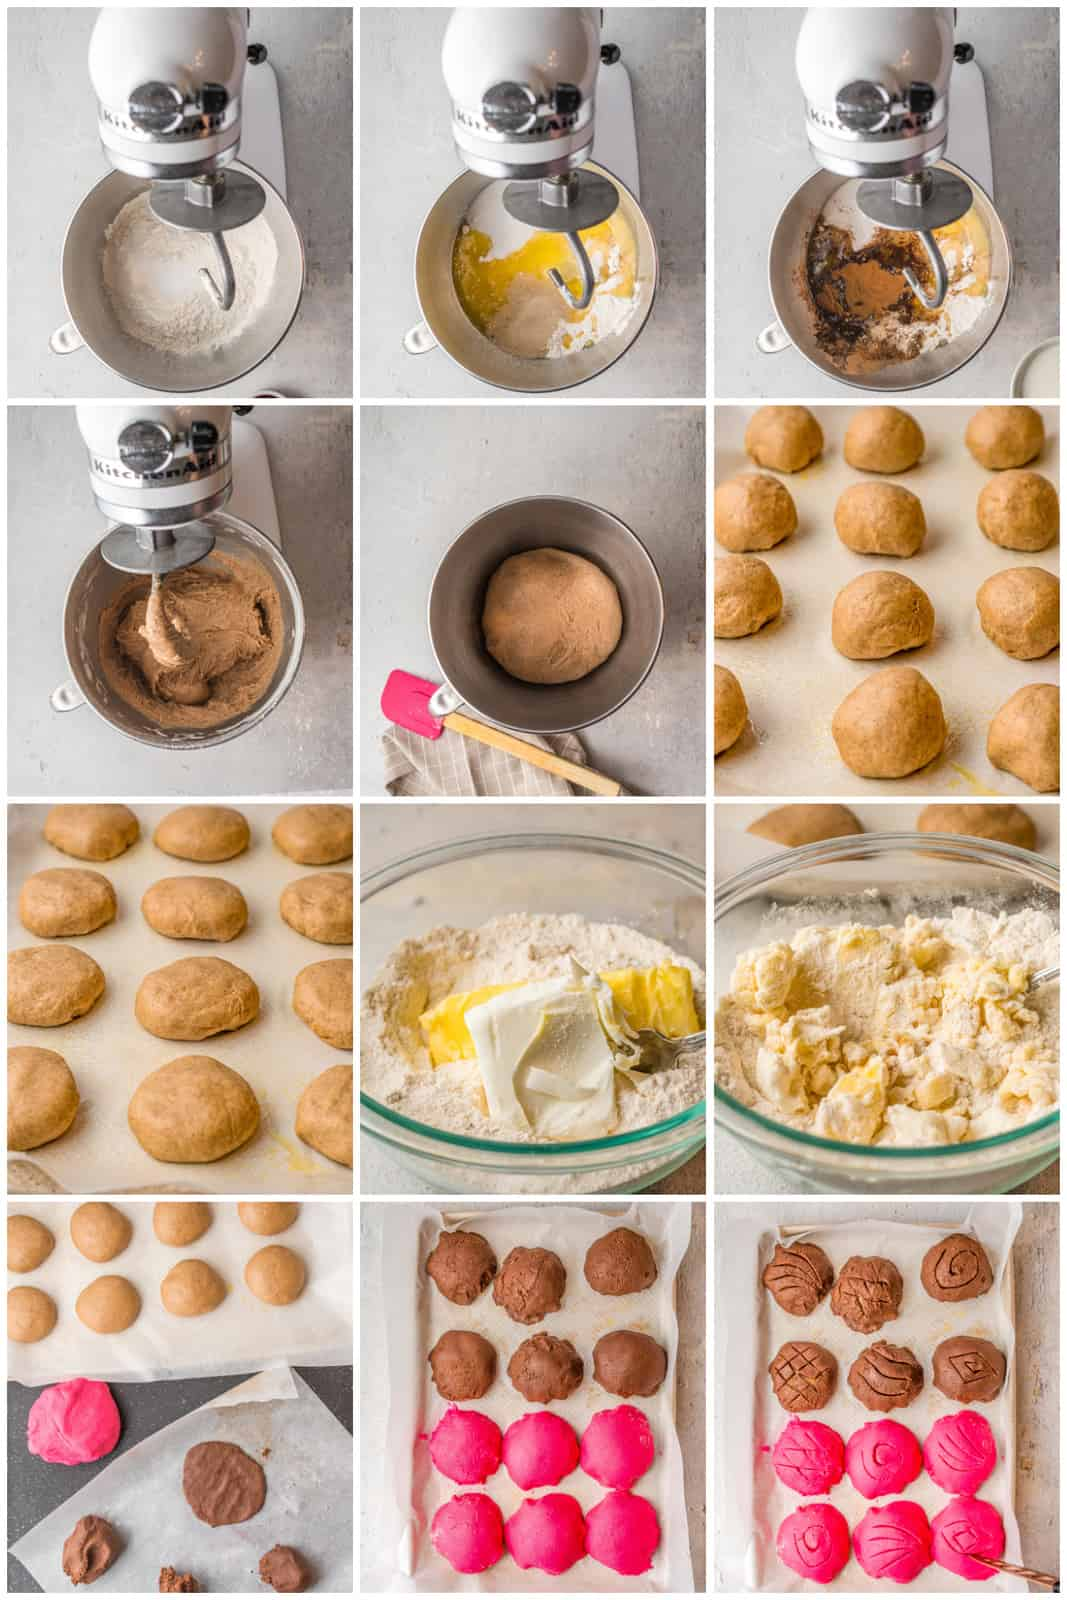 Step by step photo on how to make Conchas